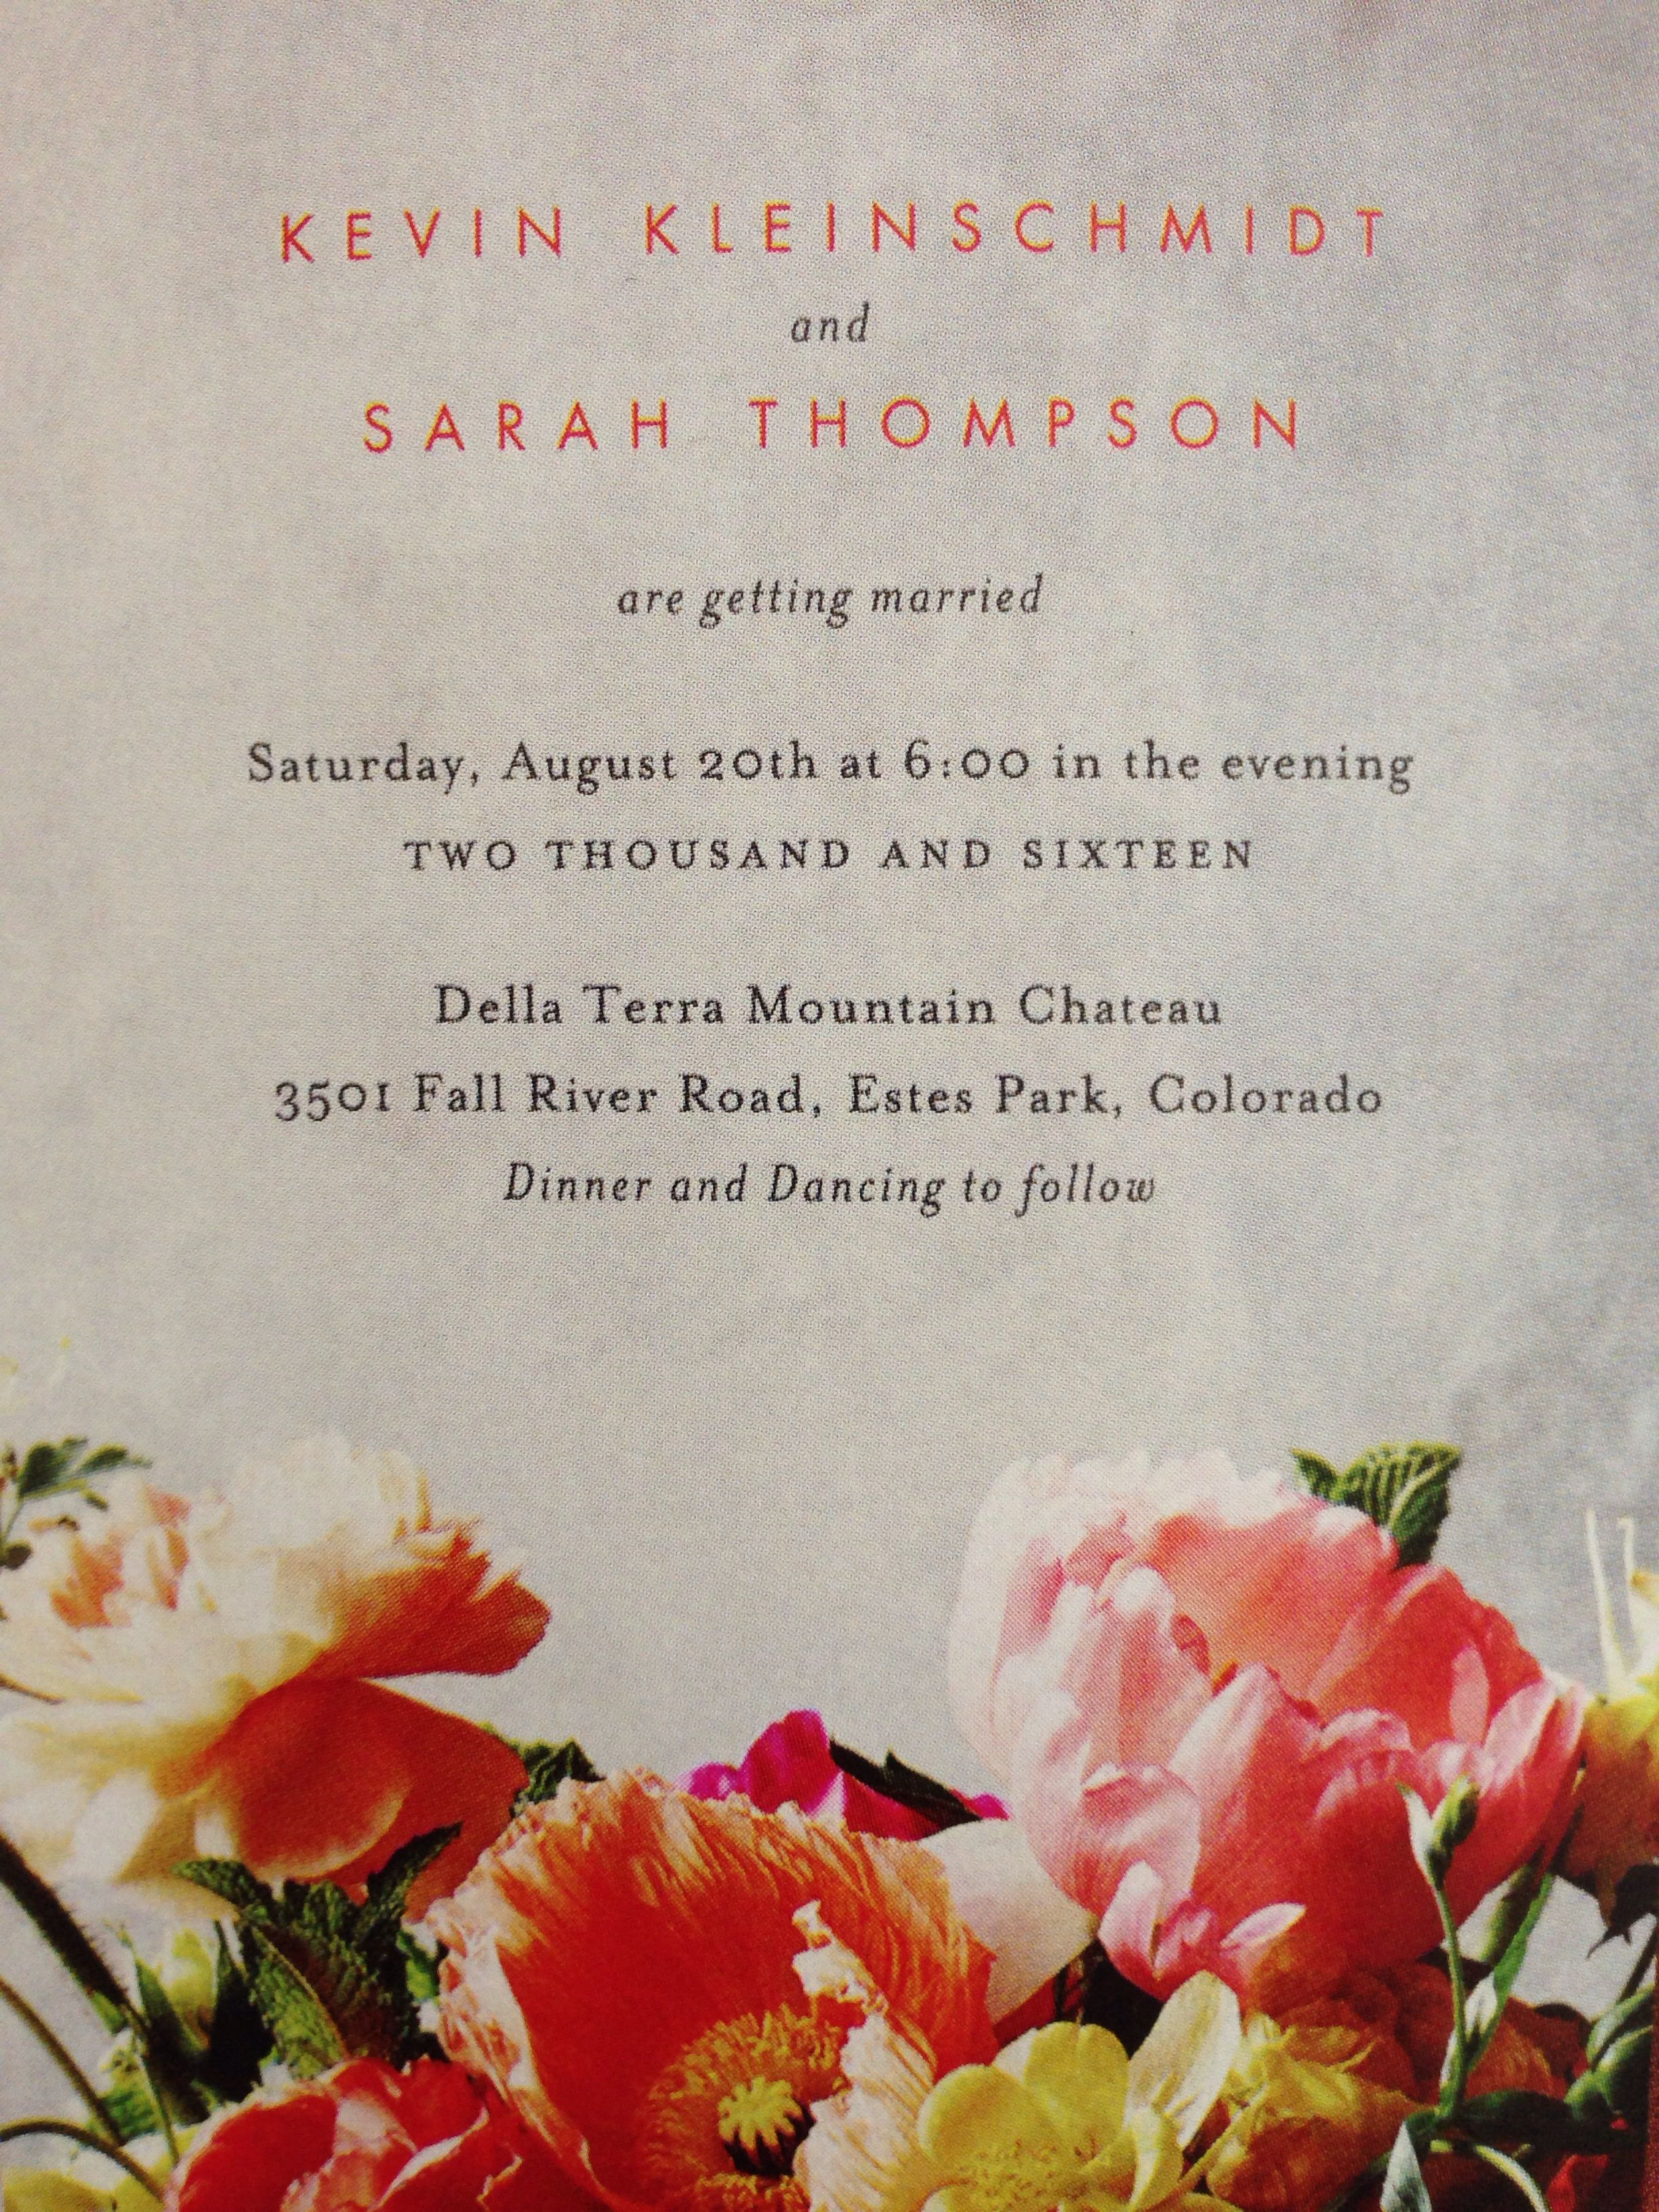 funny wedding invitation rsvp goes viral%0A Find this Pin and more on Wedding Invites by aipsensmall